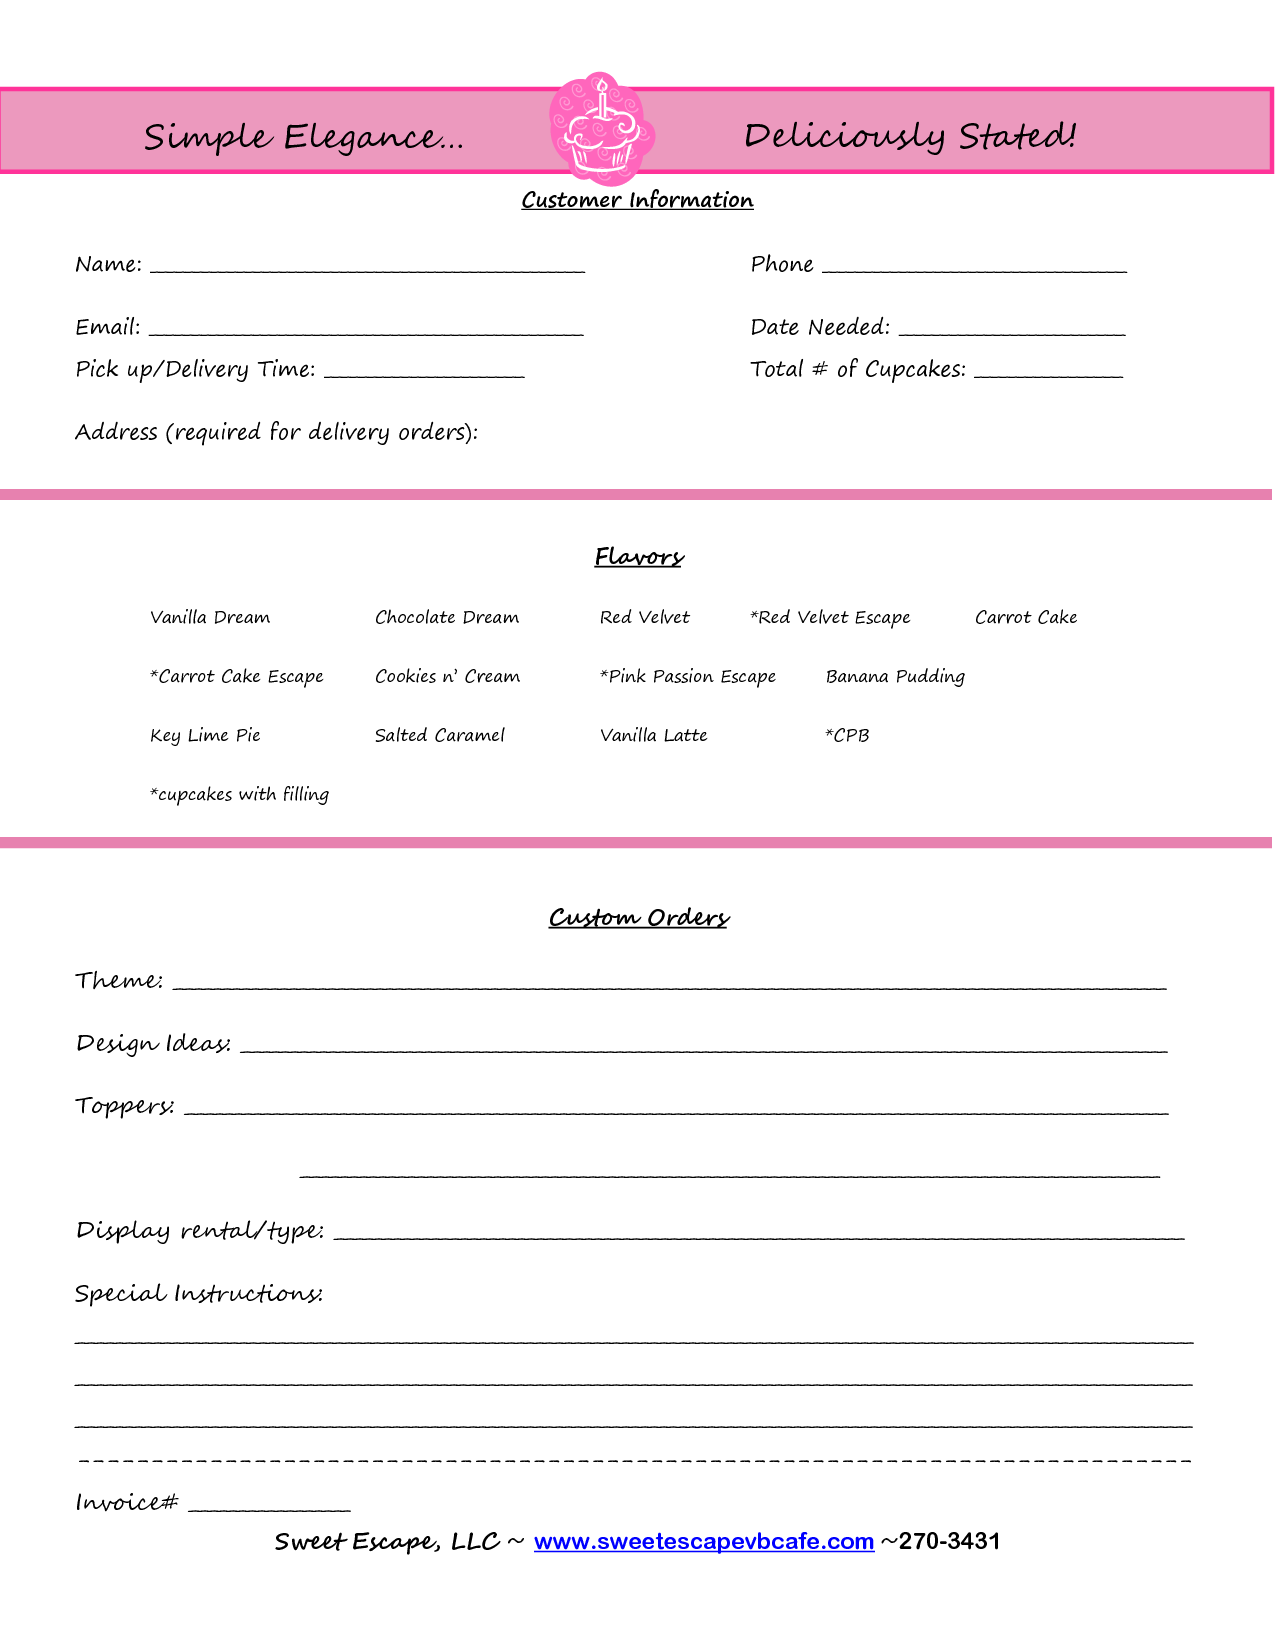 Invoiceorder Form Setup Cupcakes In 2019 Order Form Template